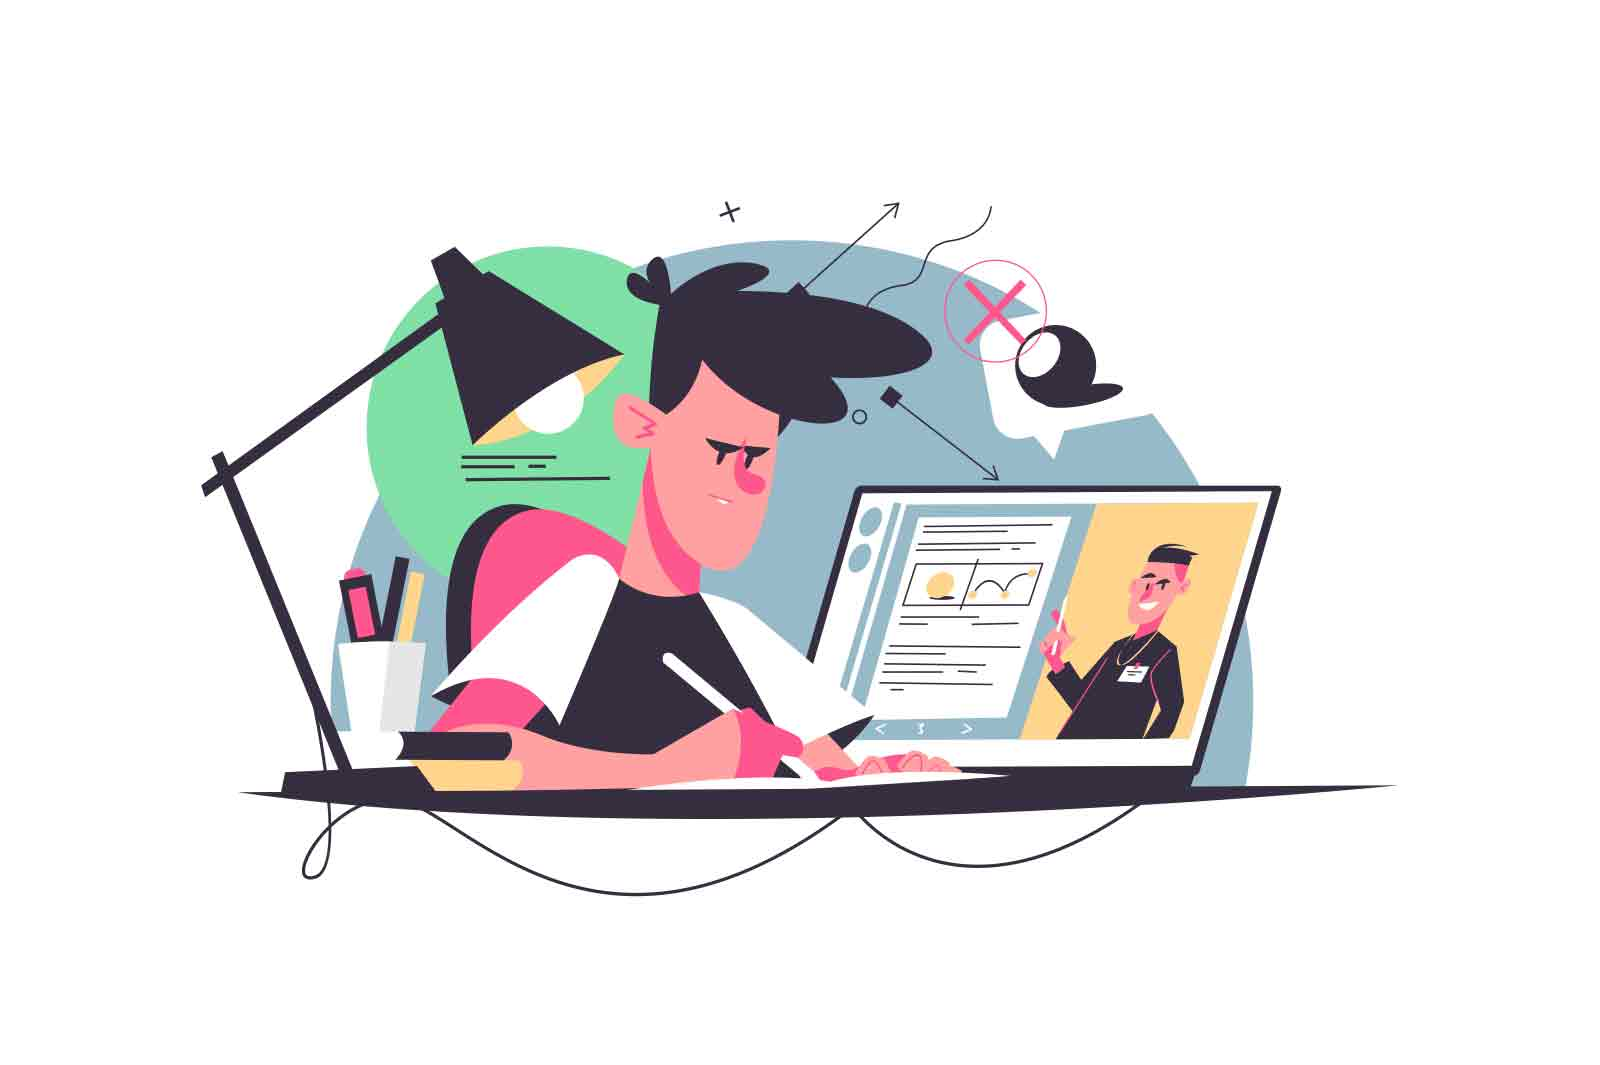 Student writes homework at desk vector illustration. Guy studying from home, laptop on table flat style. Education process, knowledge, remote study concept. Isolated on white background